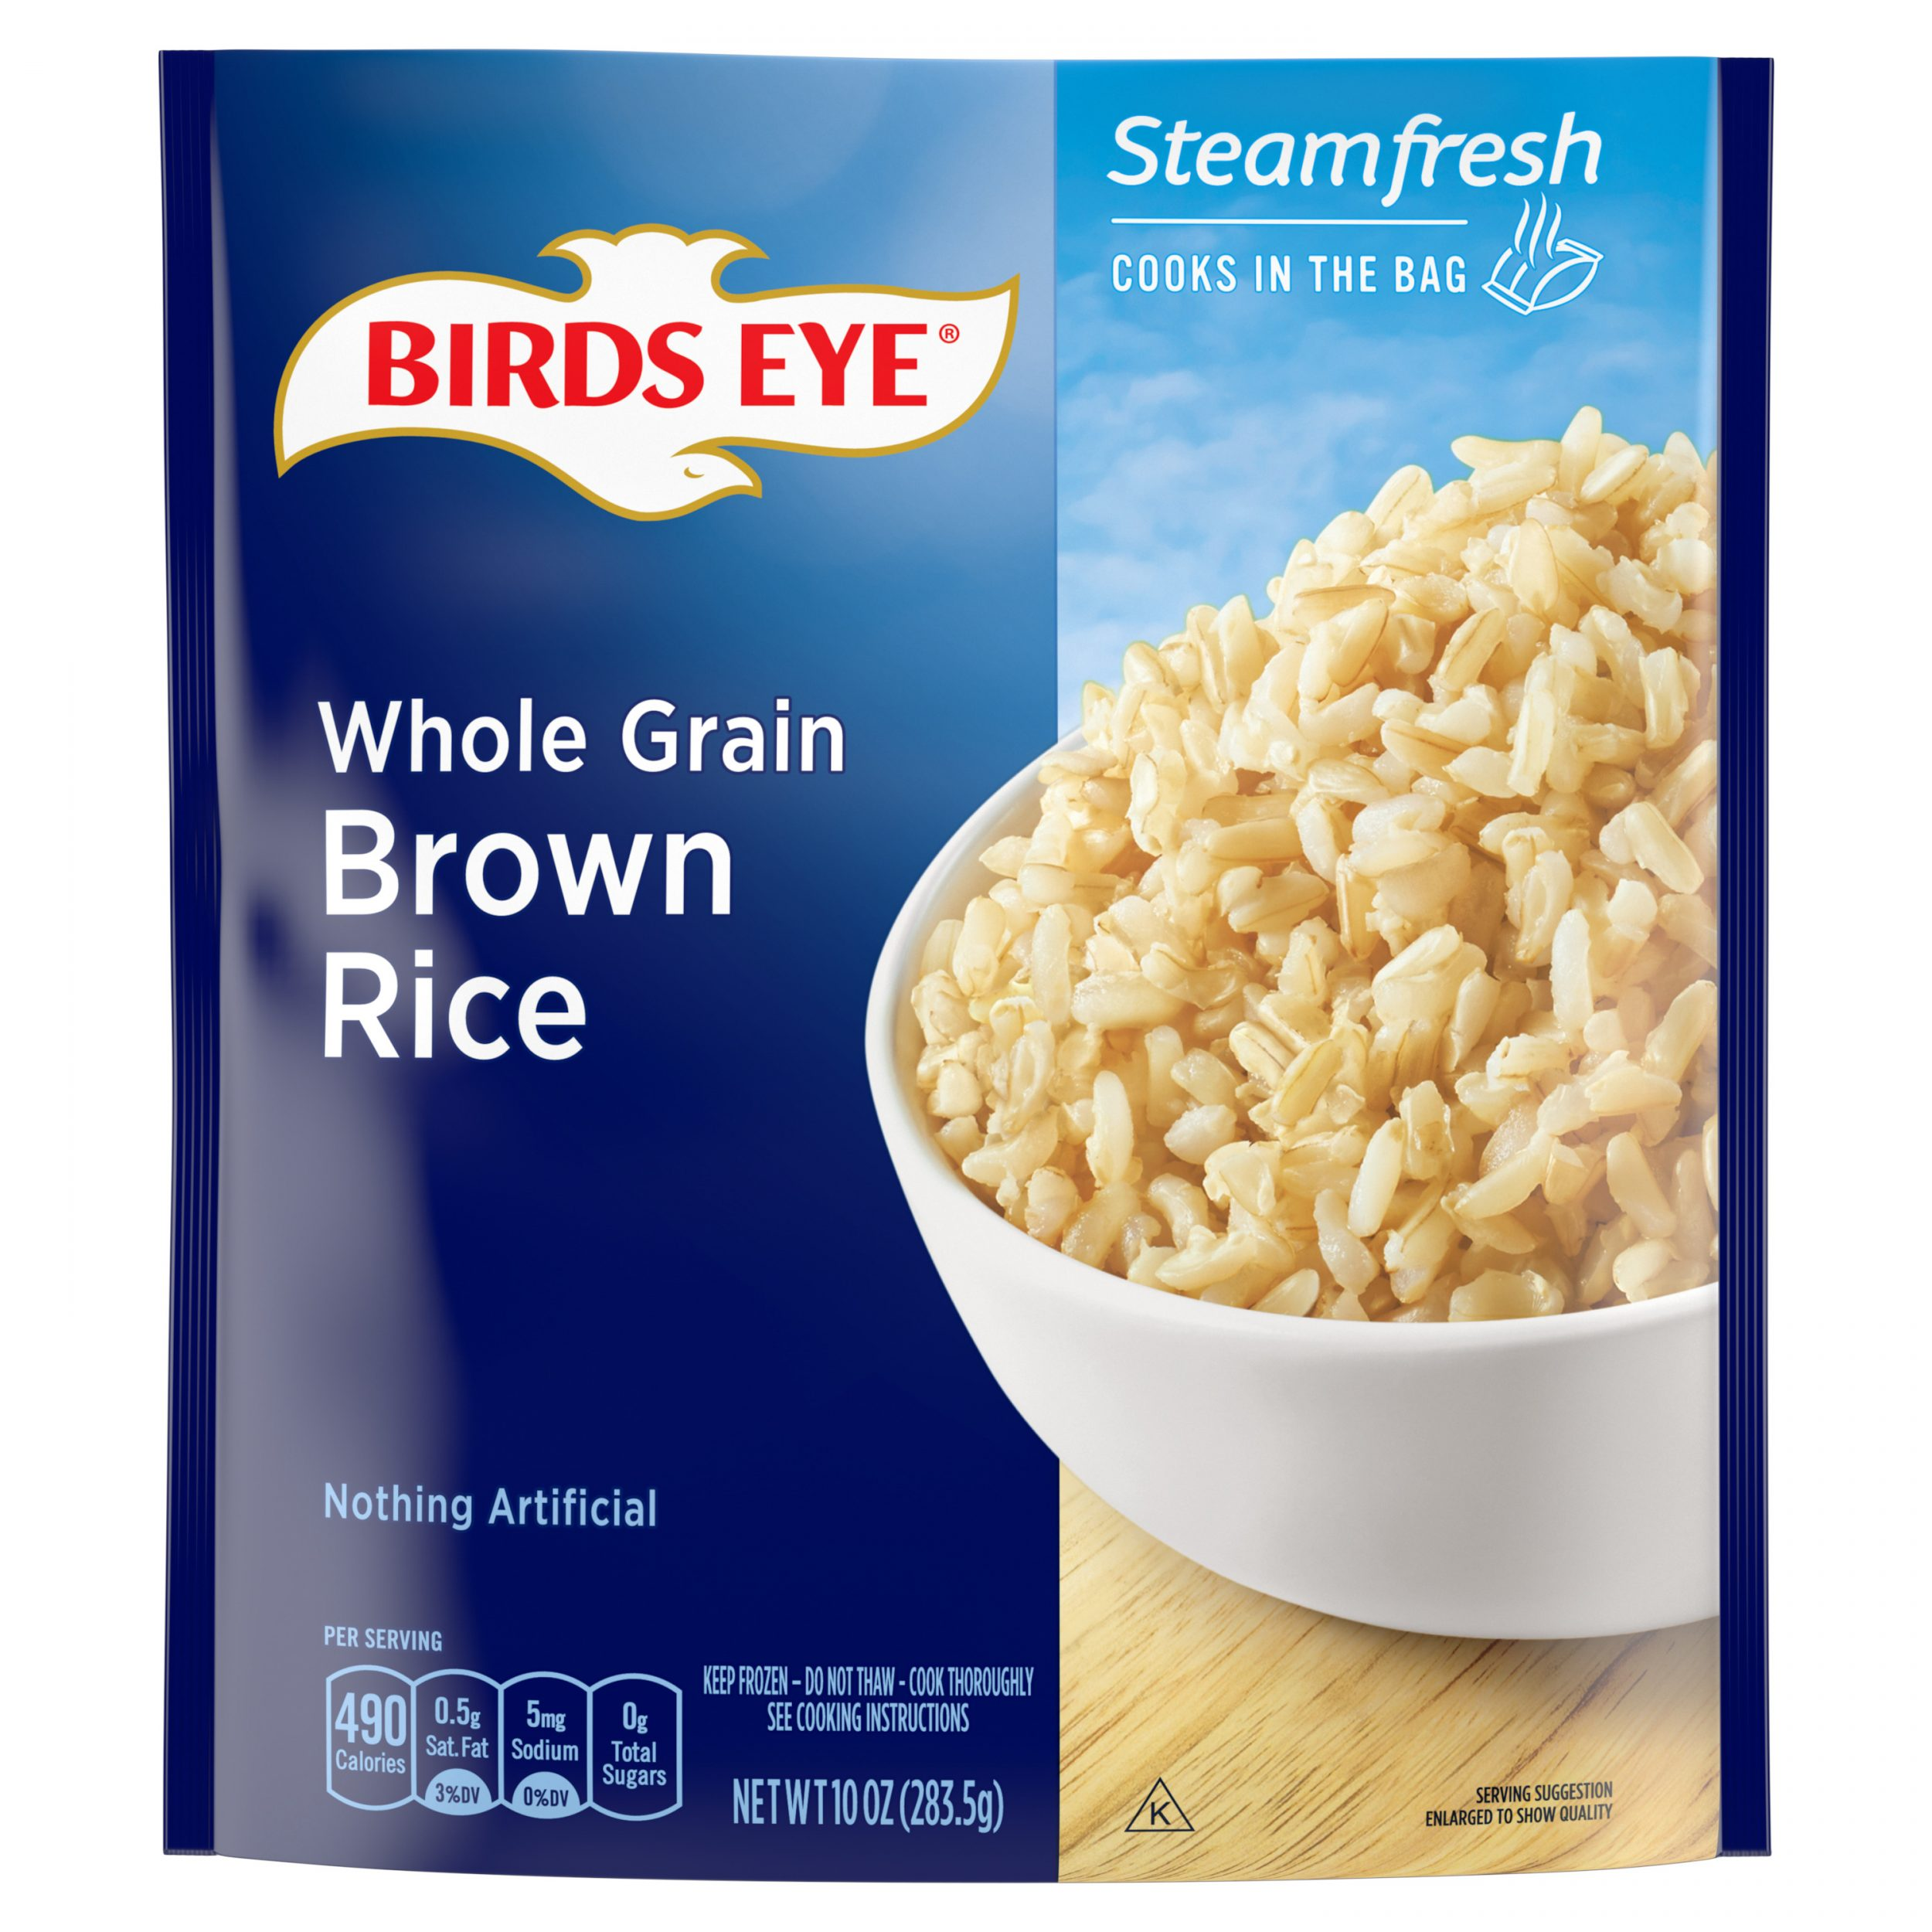 Birds Eye Steamfresh Selects Whole Grain Brown Rice